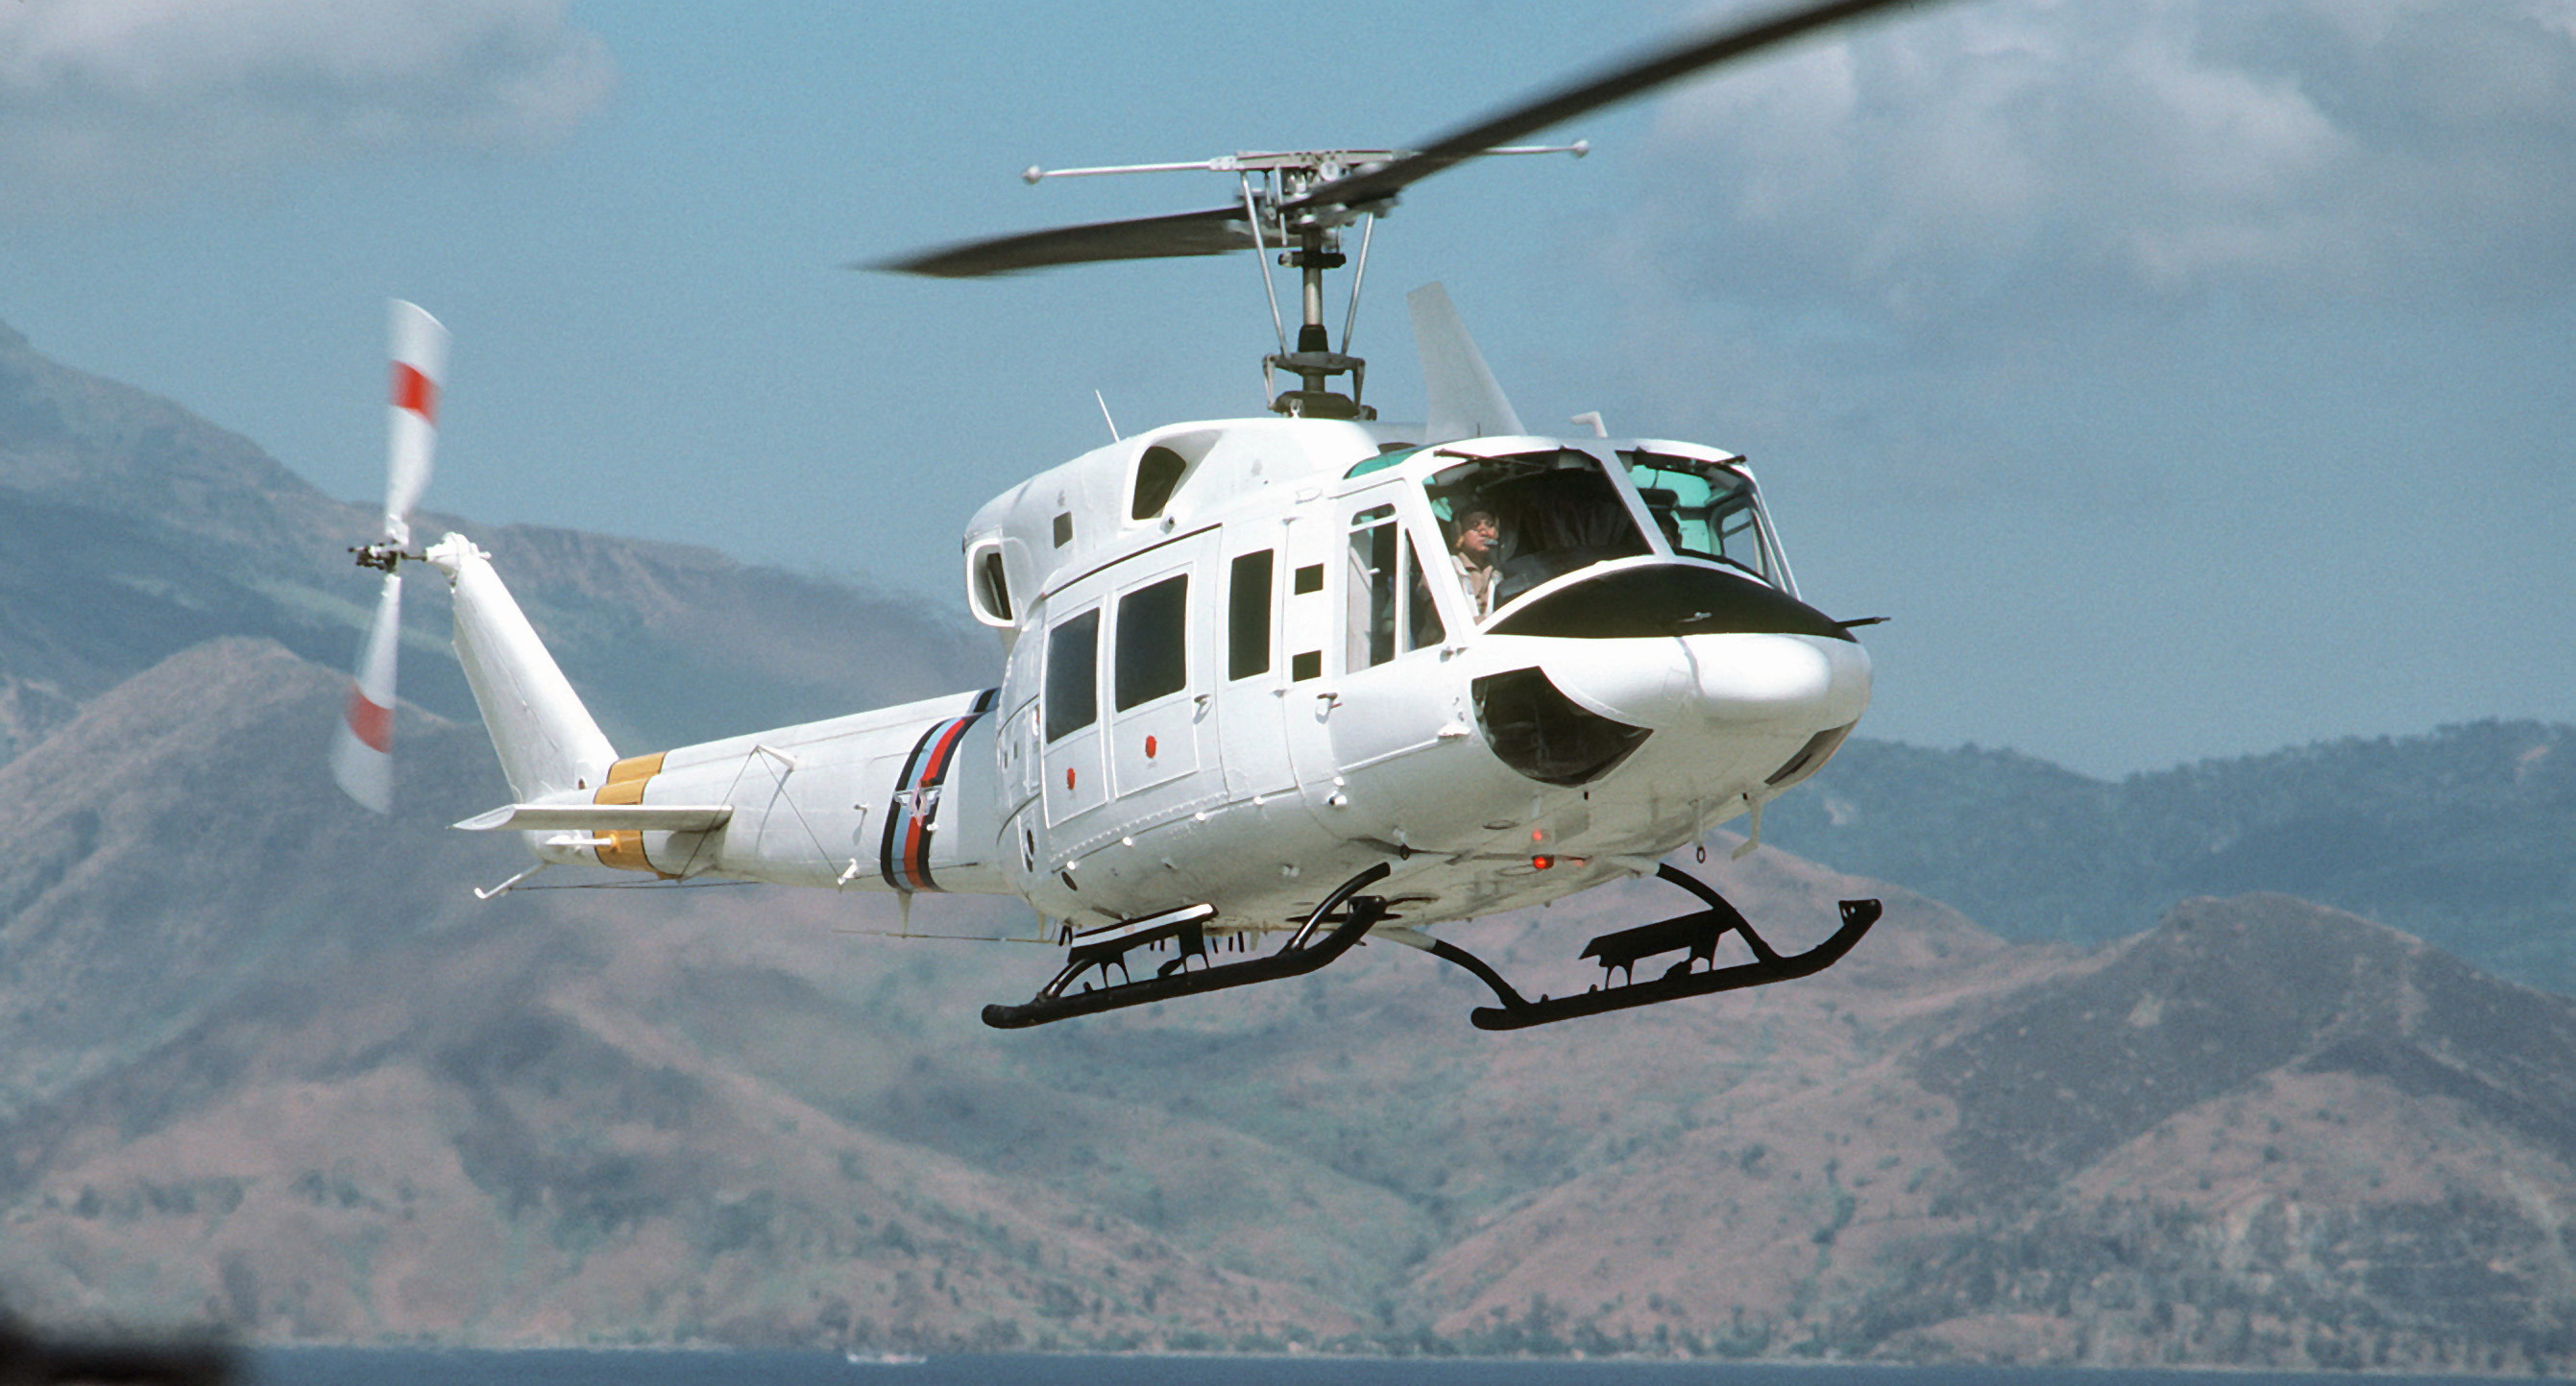 bell 430 helicopter for sale with File Uh 1n 3 on 32911 as well Bell 427 Helicopter For Sale 1 in addition File UH 1N 3 as well 44 further 2006 Eurocopter EC130 B4.